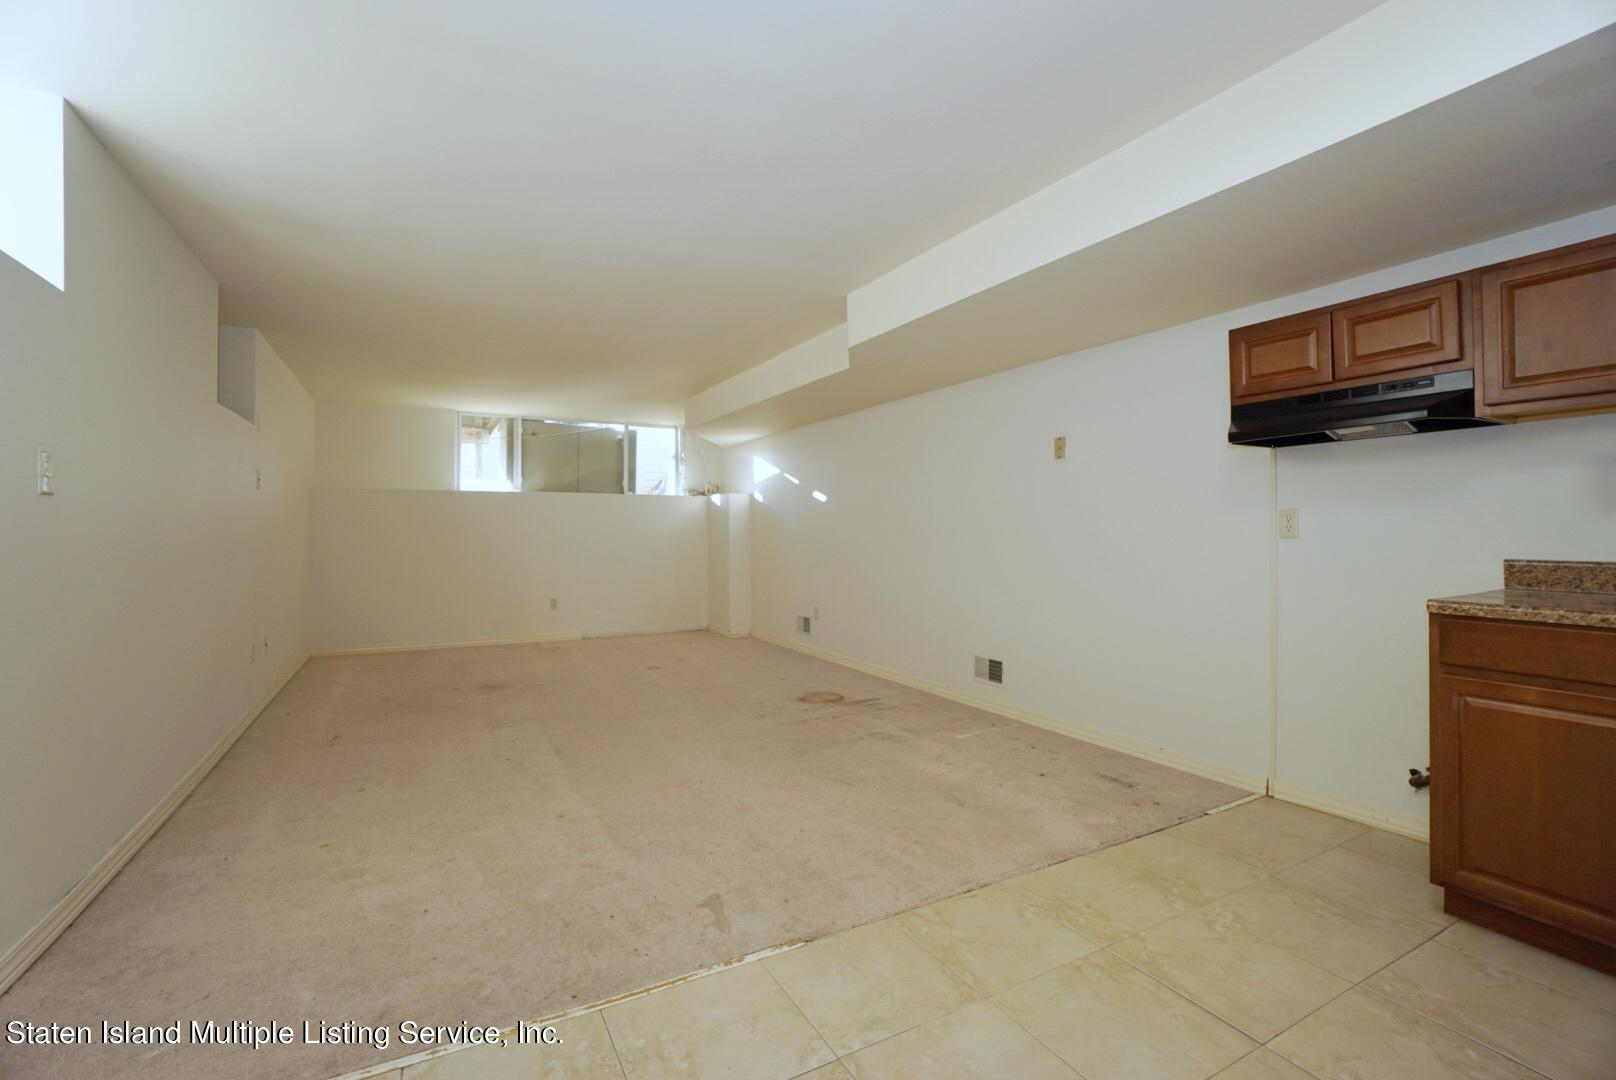 Two Family - Semi-Attached 73 Seguine Loop  Staten Island, NY 10309, MLS-1142582-40